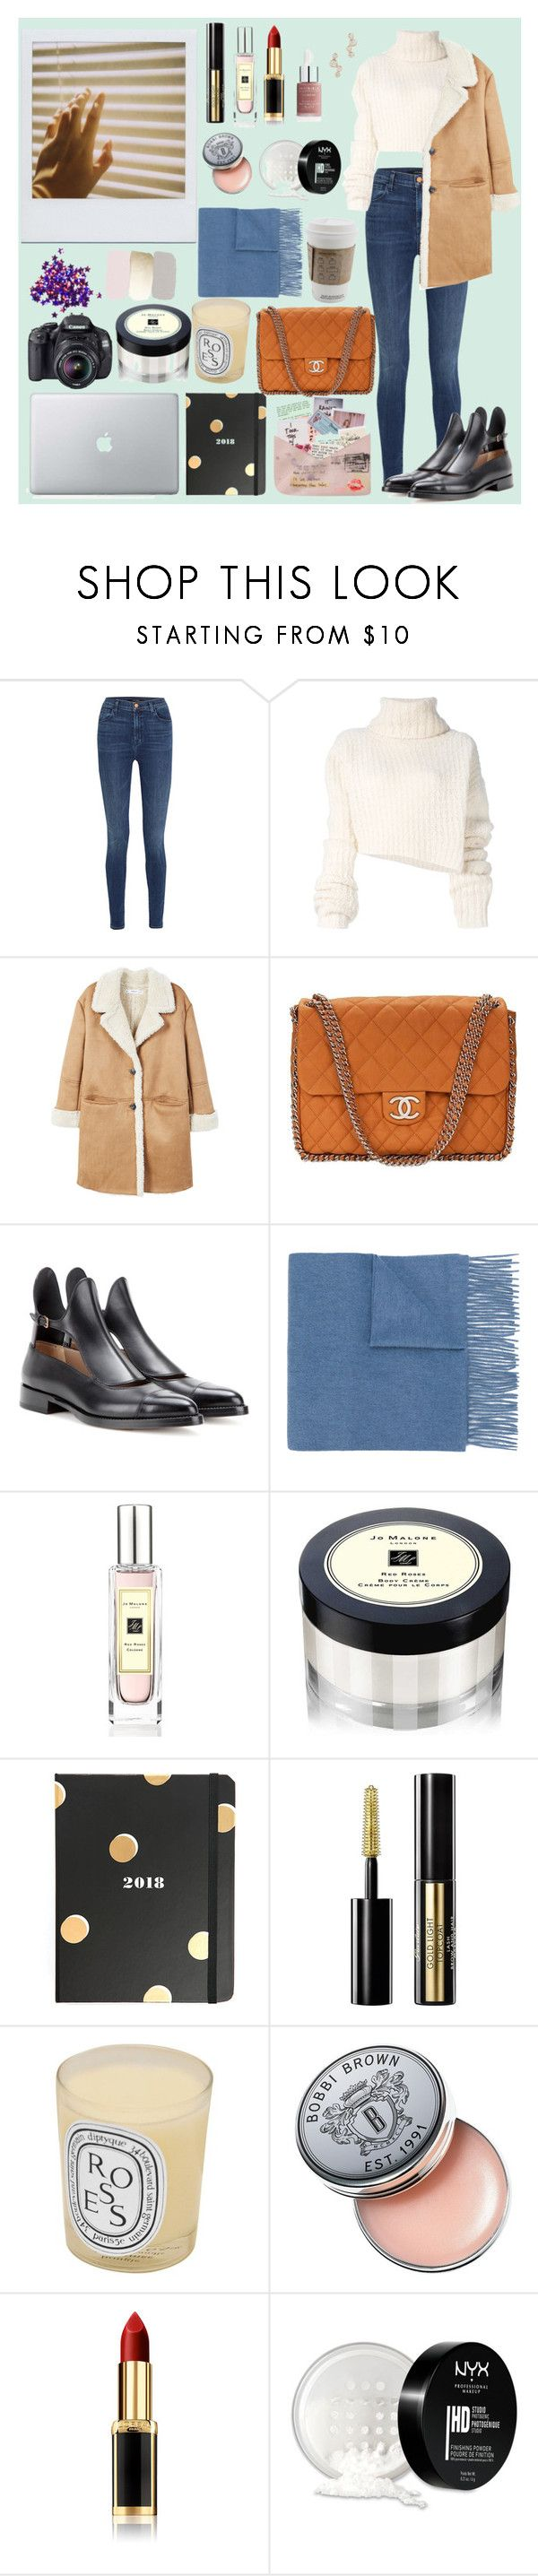 """""""Inspired by Marie Novosad №4"""" by mvr-nov ❤ liked on Polyvore featuring J Brand, Ann Demeulemeester, MANGO, Chanel, Francesco Russo, N.Peal, Jo Malone, Kate Spade, Guerlain and Diptyque"""